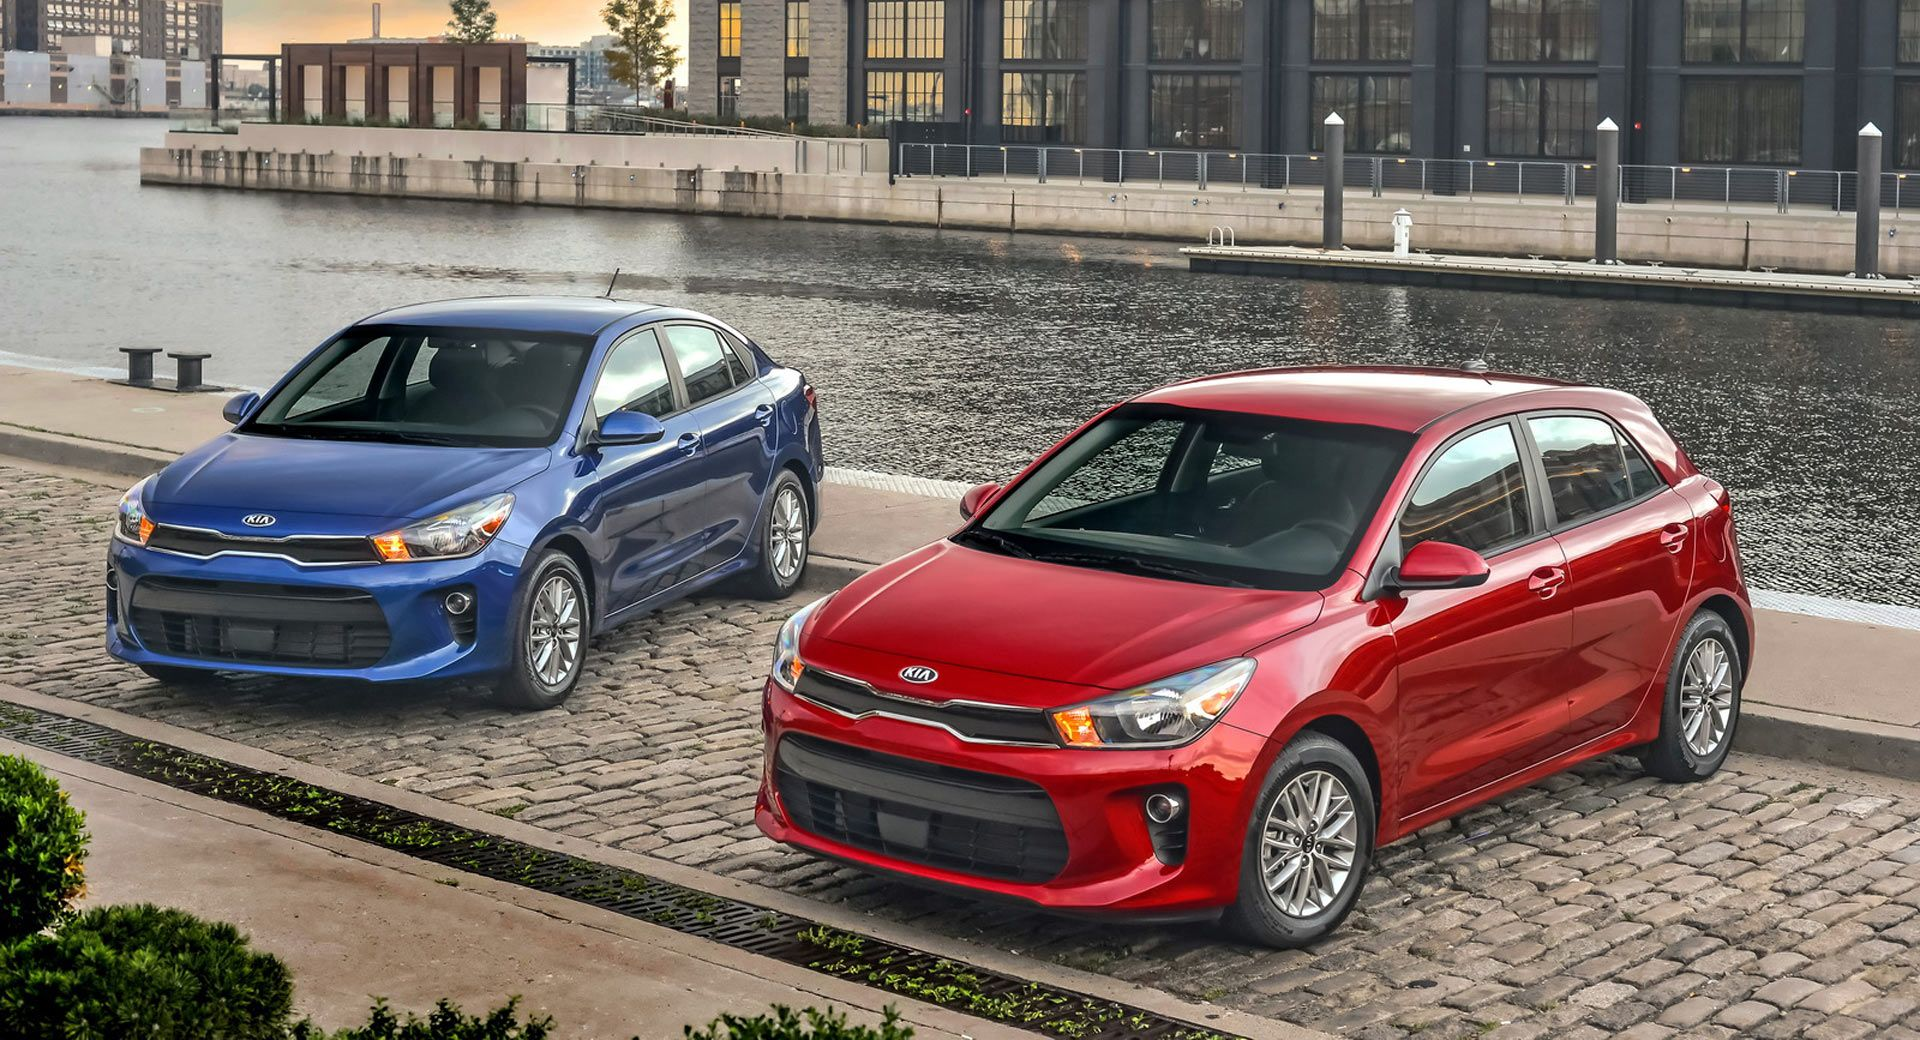 Kia Rio And Venga Diesels To Be Dropped From Uk Market Due To Low